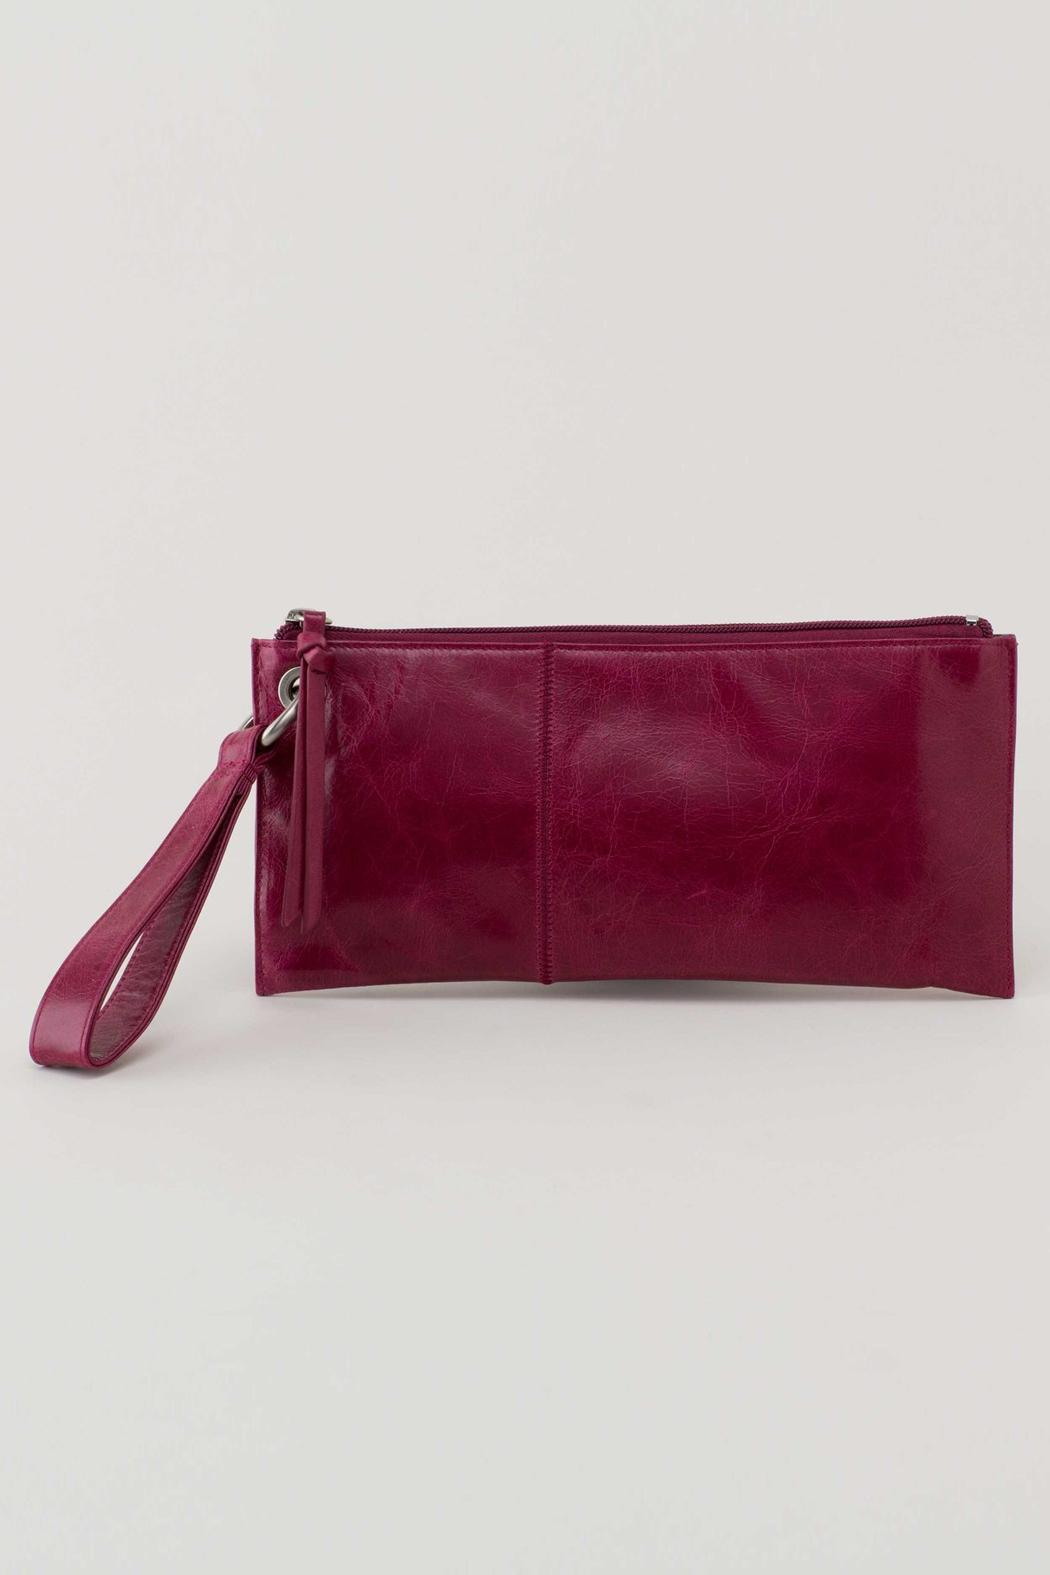 VIDA Leather Statement Clutch - AJP by VIDA